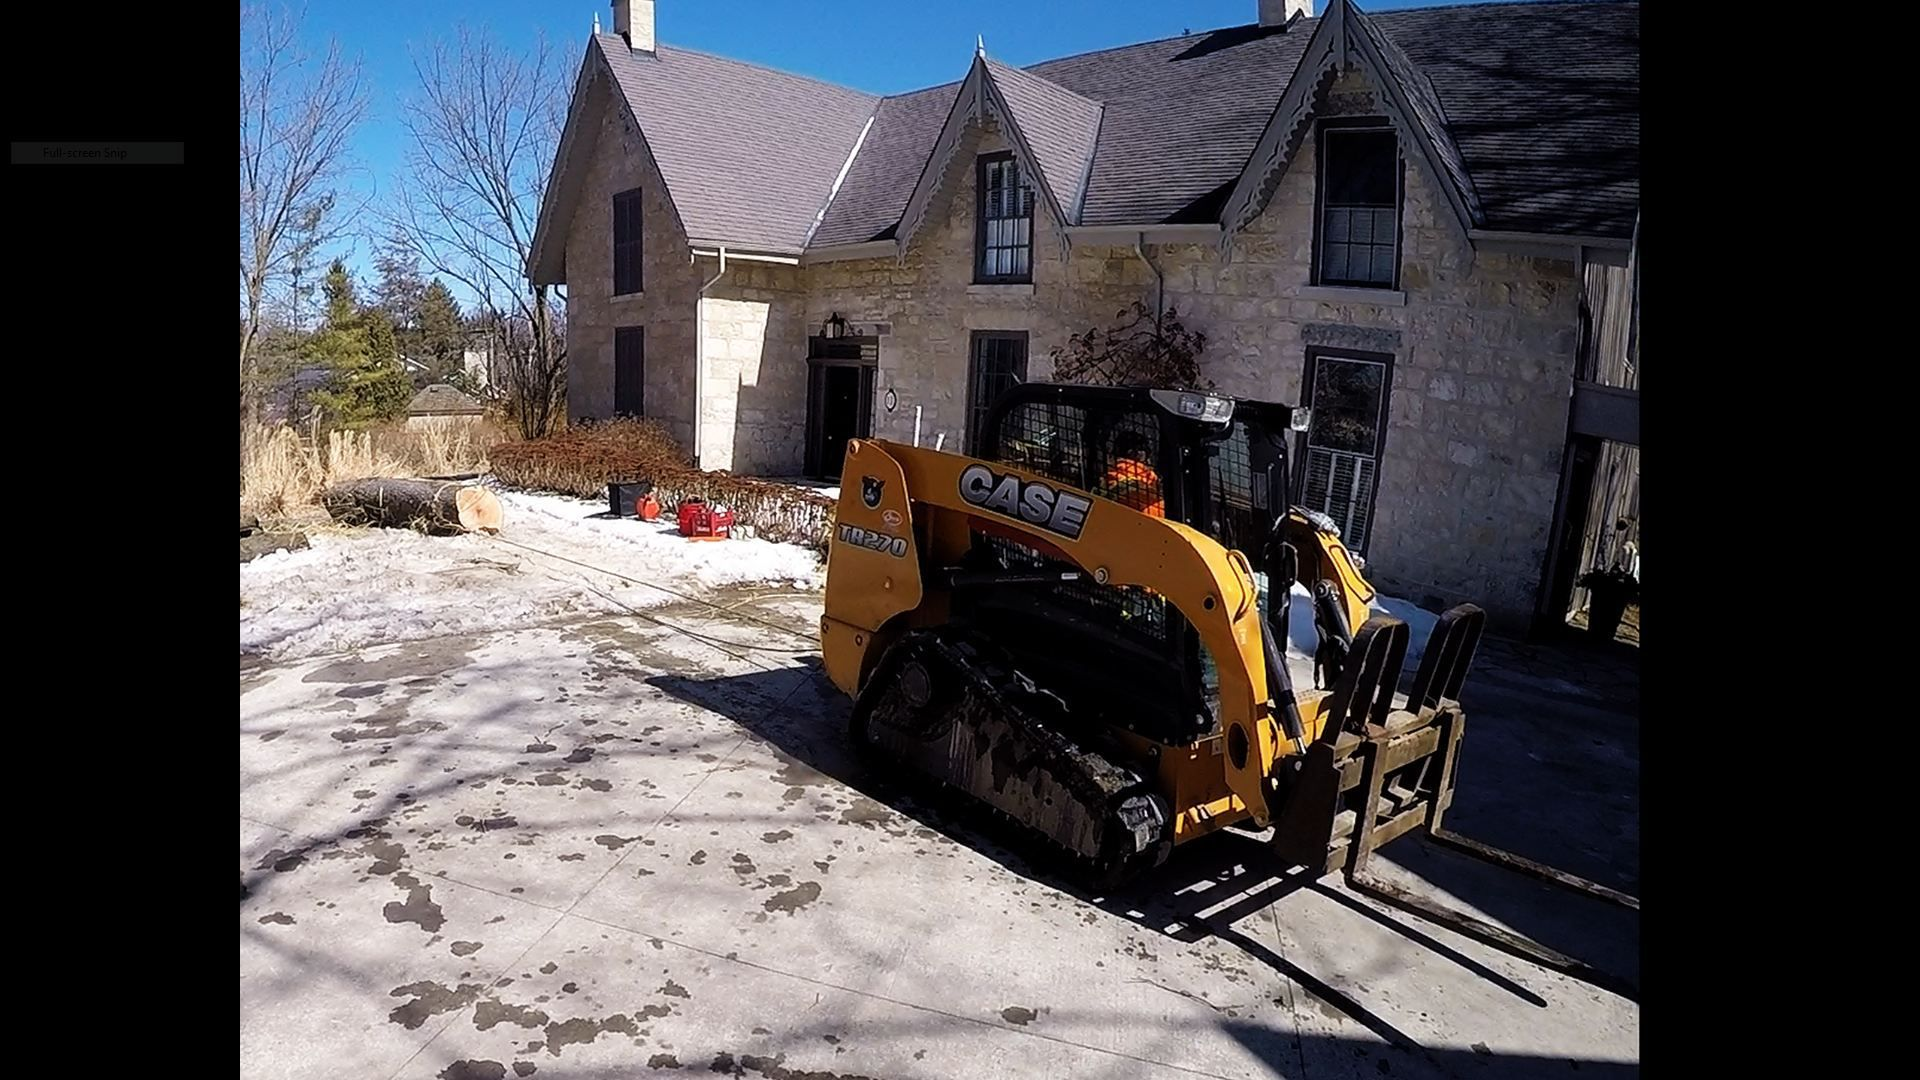 TR-270 Case skid steer at customers house.